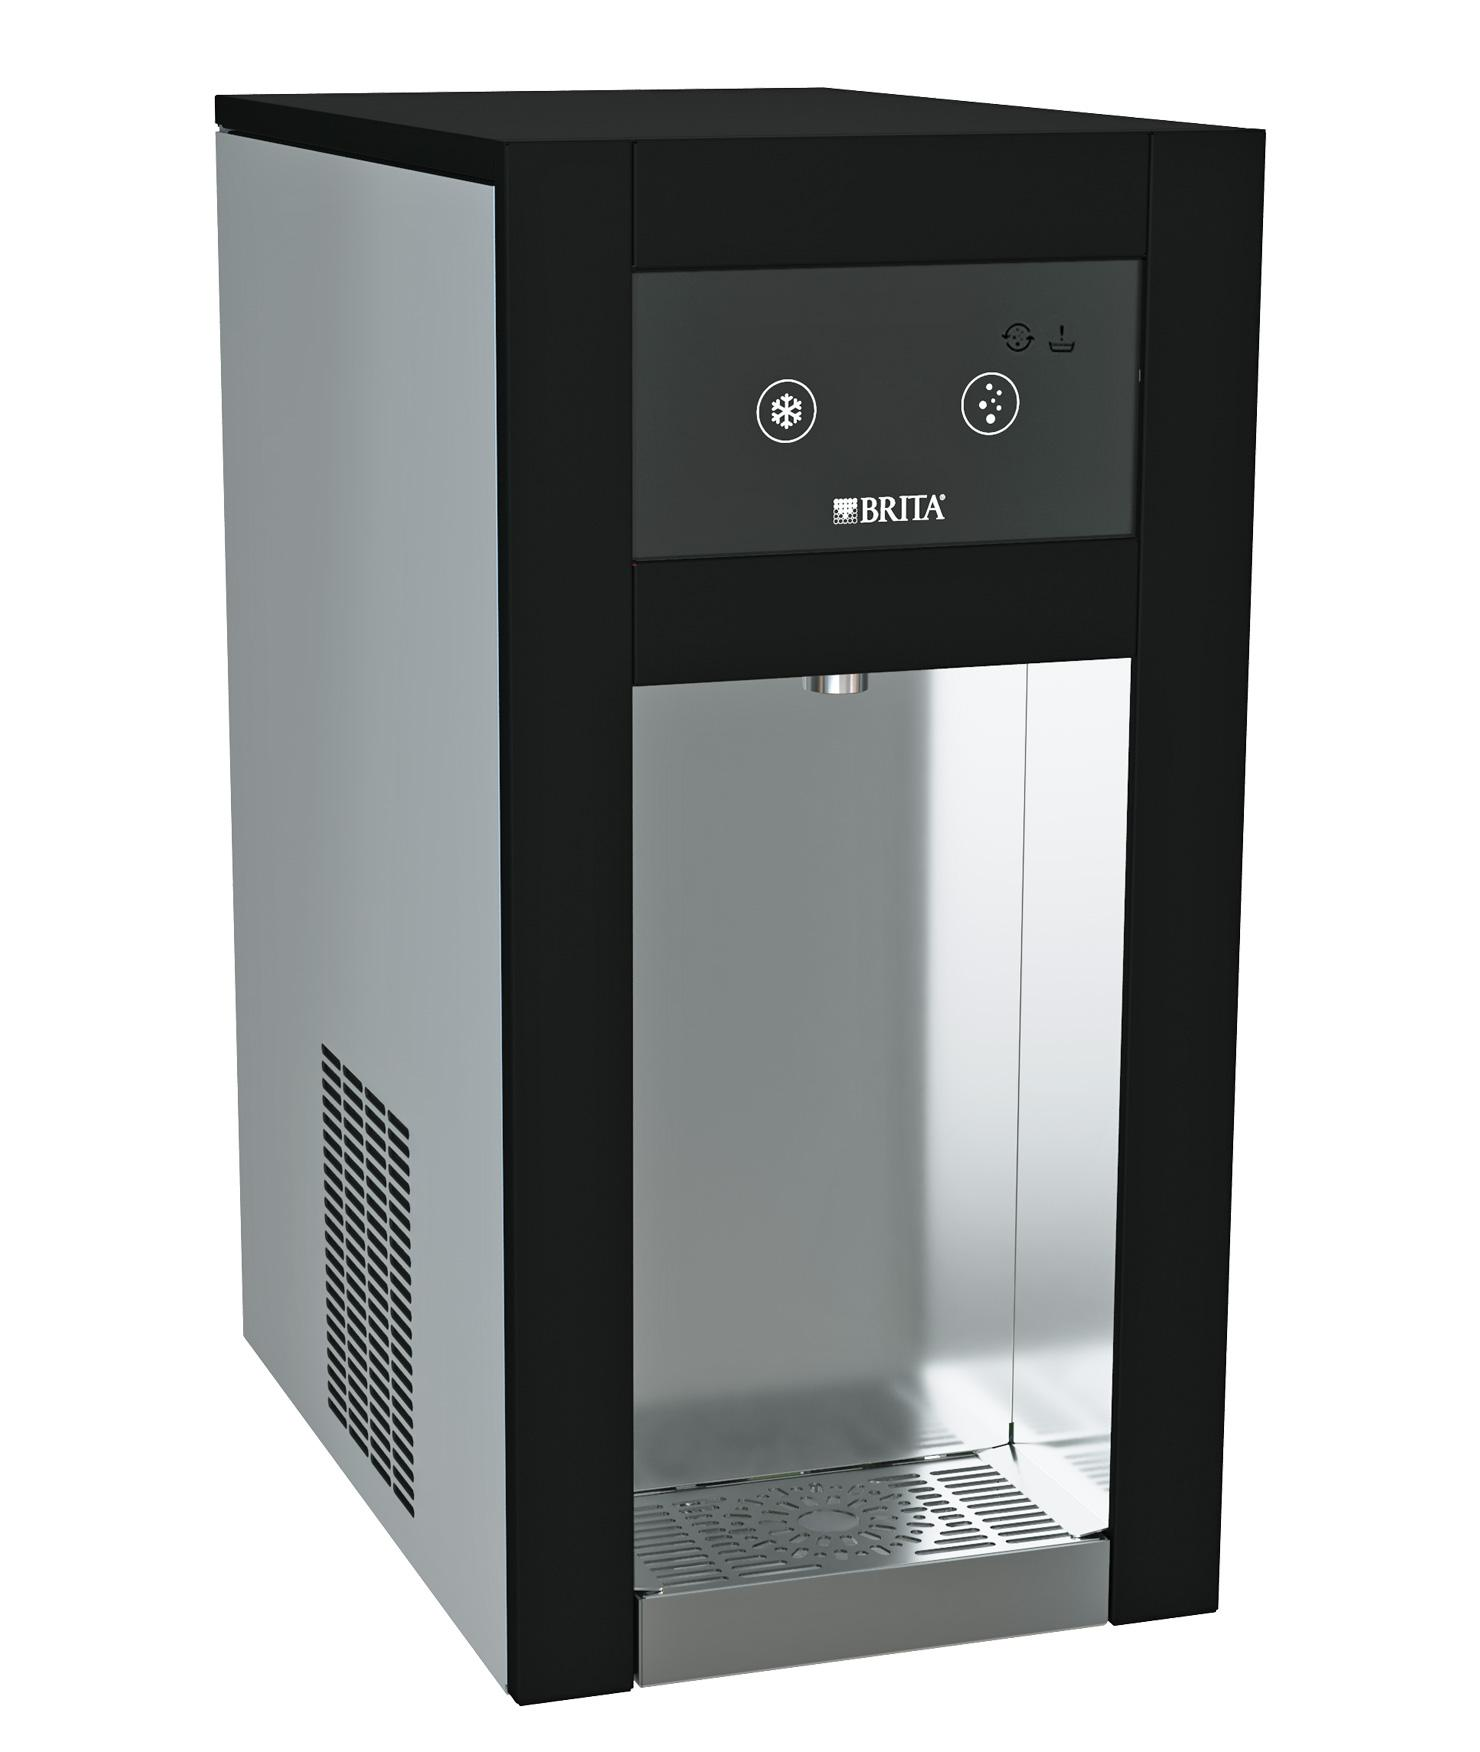 BRITA dispenser VIVREAU Sodamaster 50 right